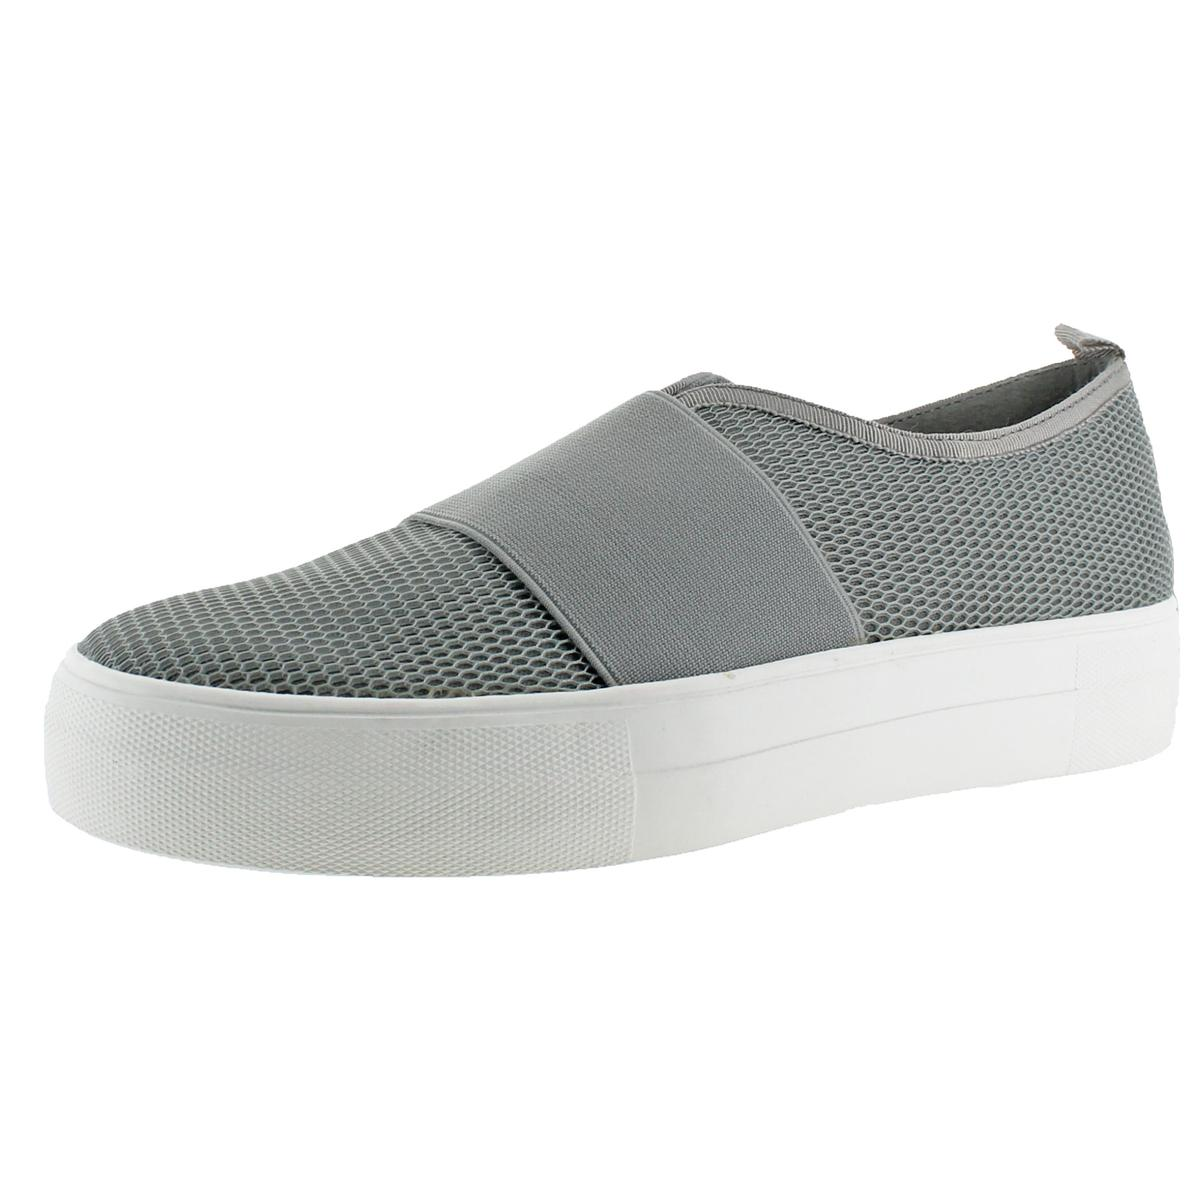 Details about Not Rated Womens Trenoly Mesh Crossover Strap Slip-On Shoes  Flats BHFO 9780 d942574c4